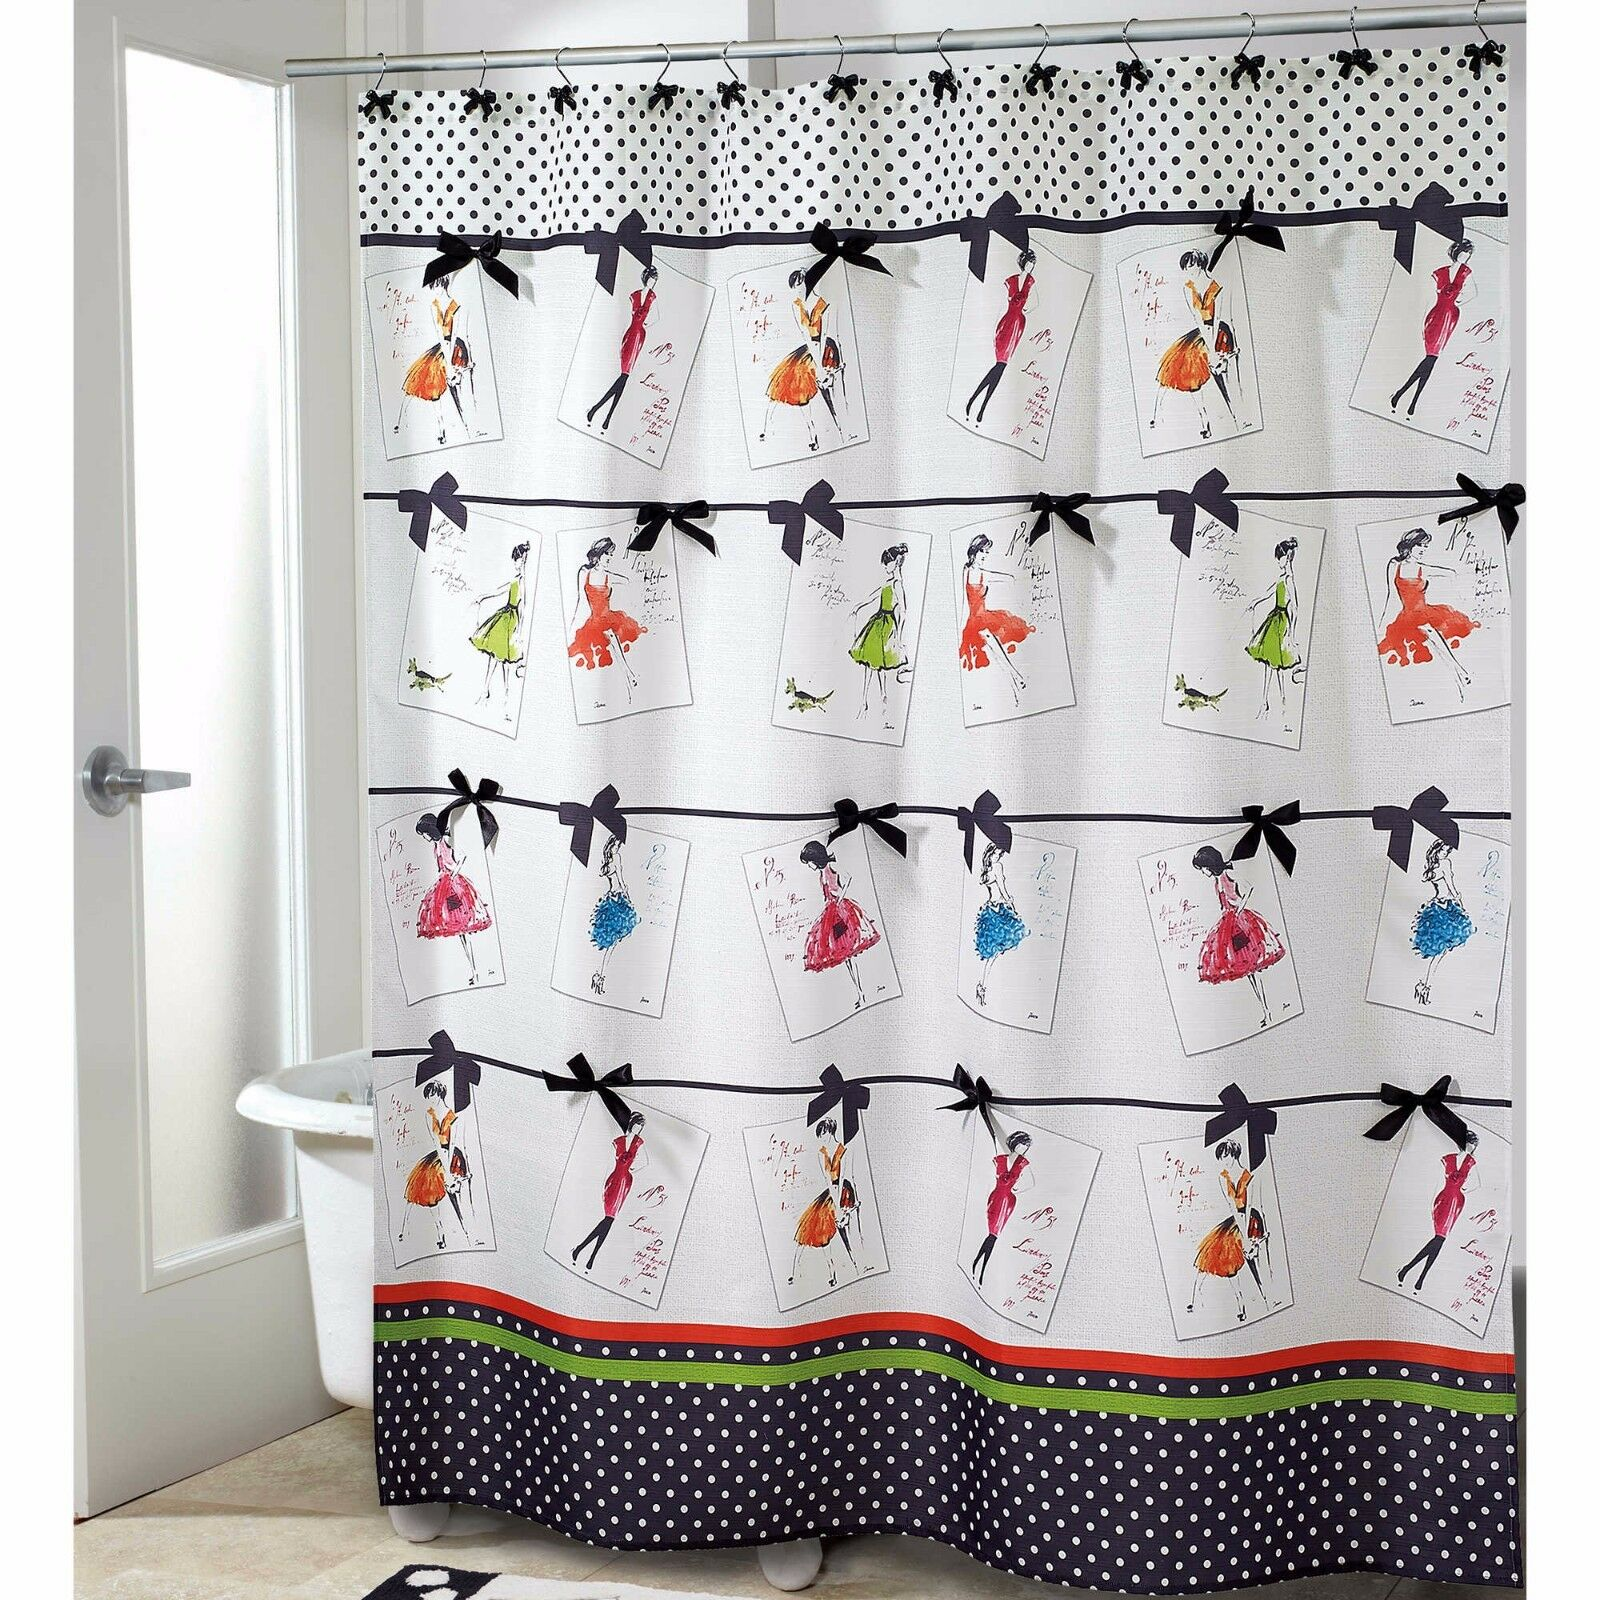 Avanti Couture Girls Fabric Fabric Fabric Shower Curtain Diva Woman